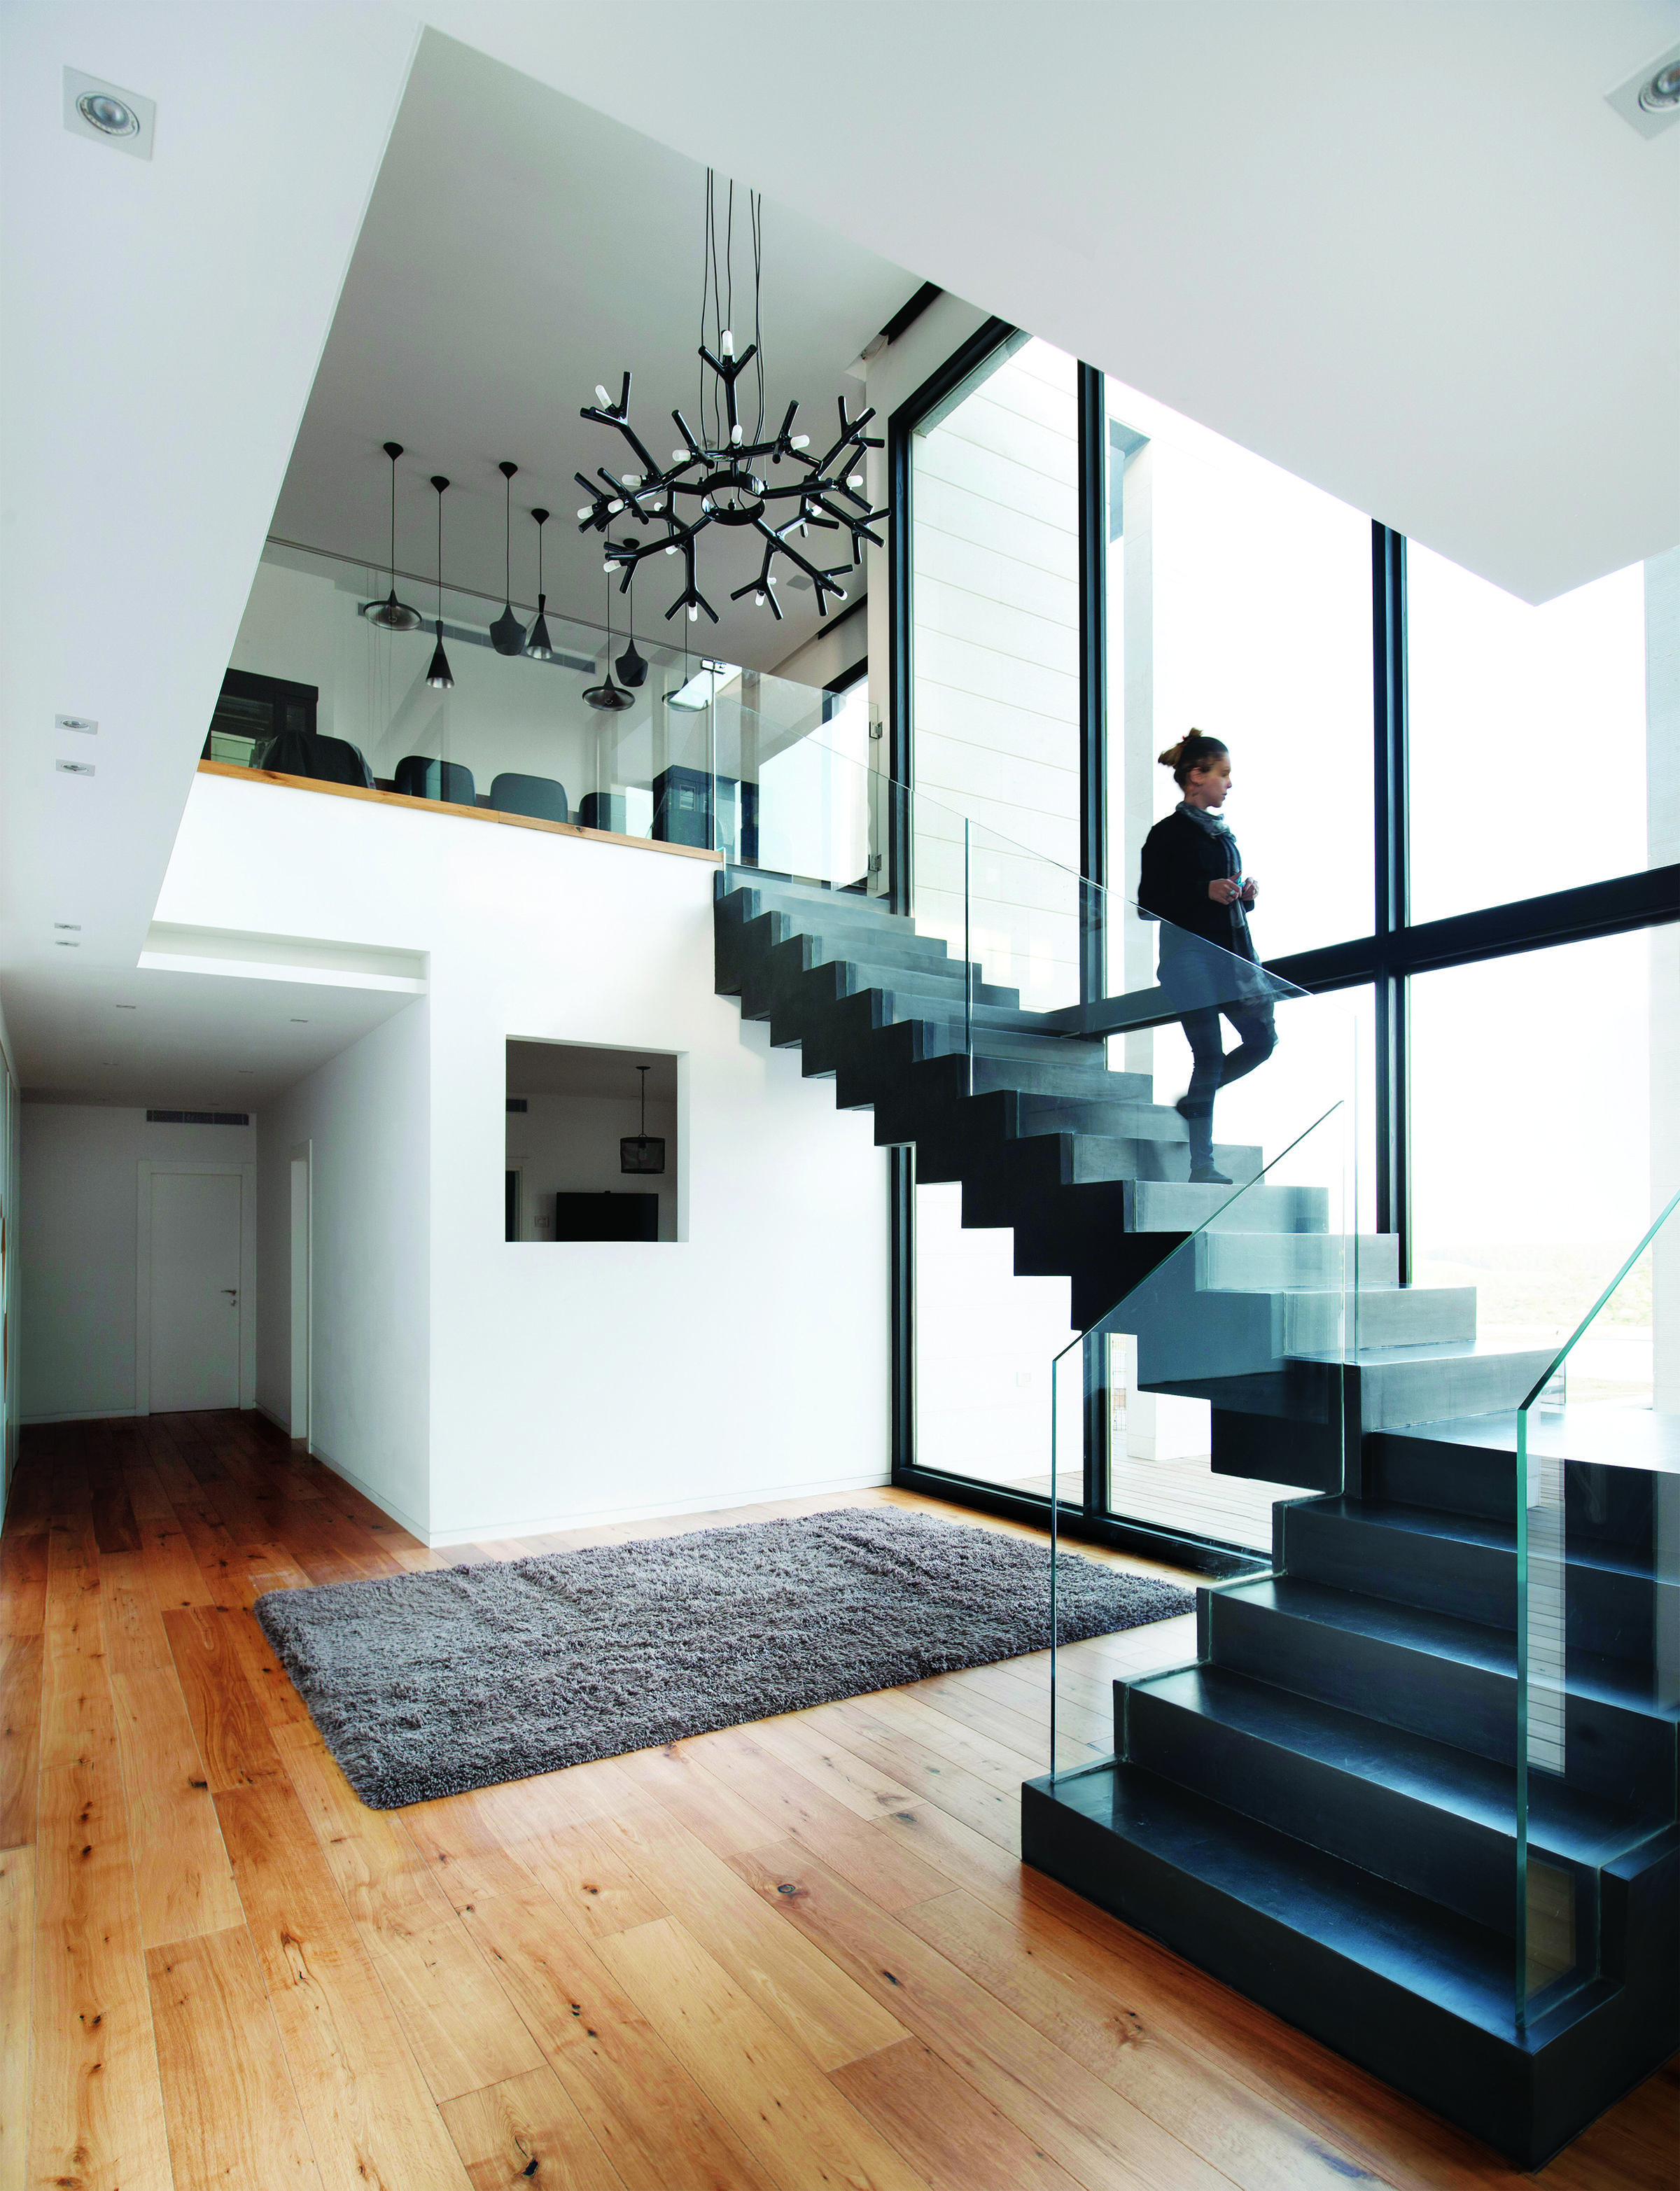 Top 10 Unique Modern Staircase Design Ideas For Your Dream House Home Stairs Design Stairway Design Stairs Design